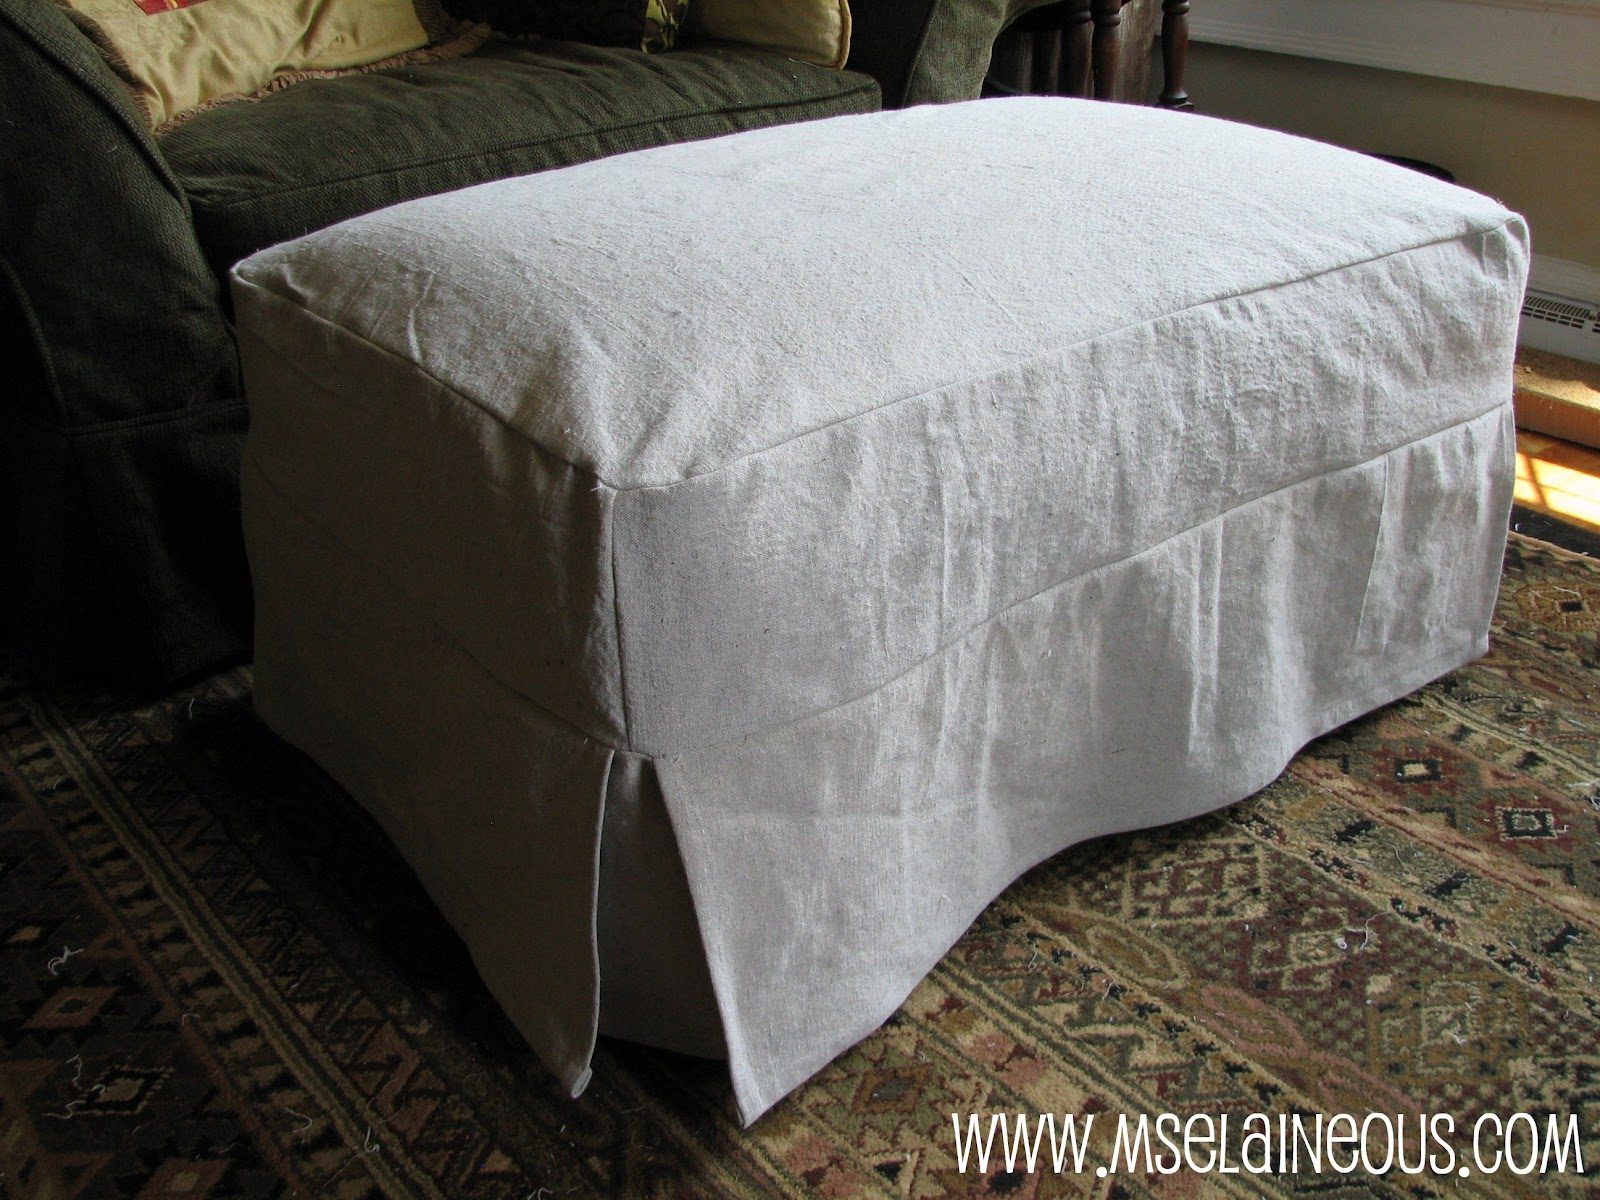 simple diy chair covers back massage pad ms elaineous teaches sewing the slipcover all